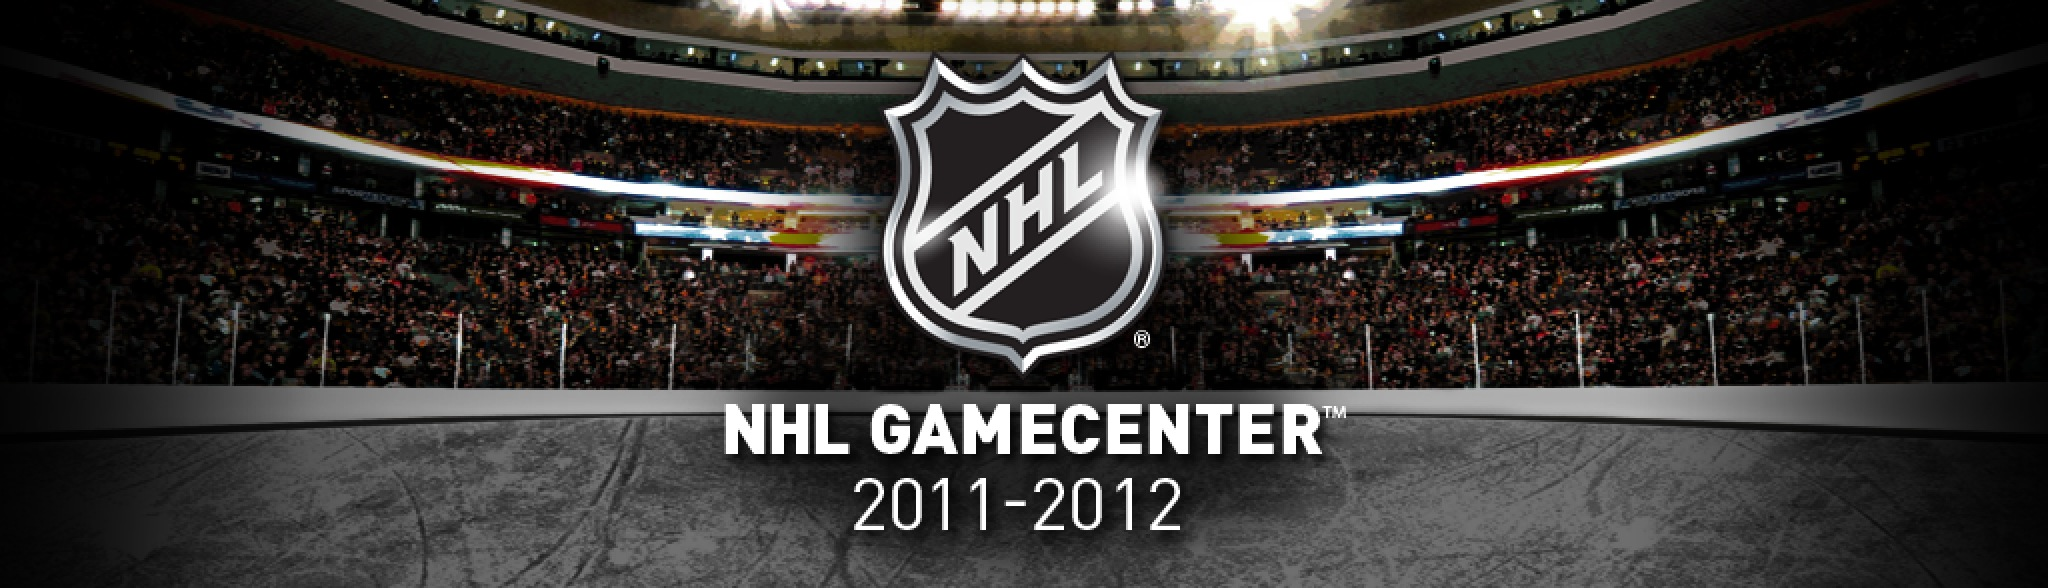 Review: NHL GameCenter 2011-2012 for iPhone and iPad